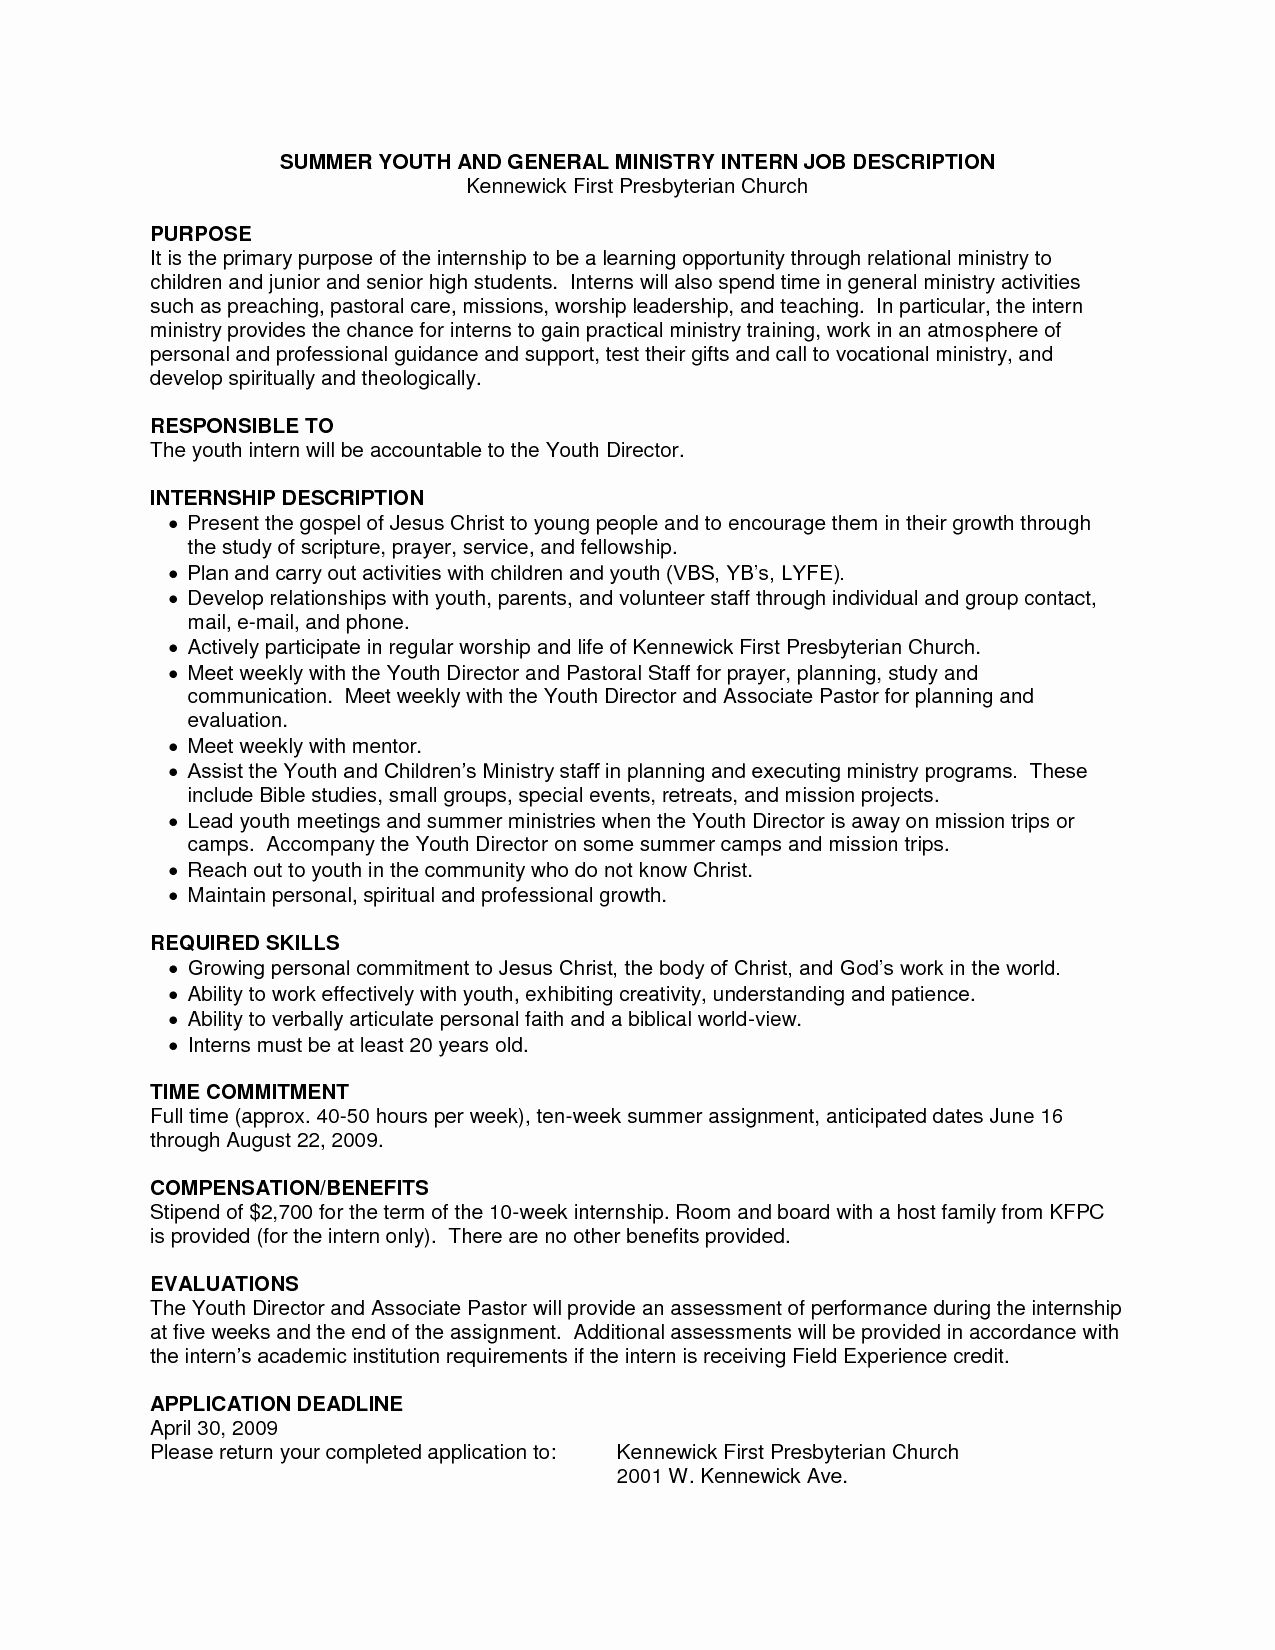 Resume Examples 15 Year Old Resume Templates Resume Examples Teacher Resume Template Resume Templates